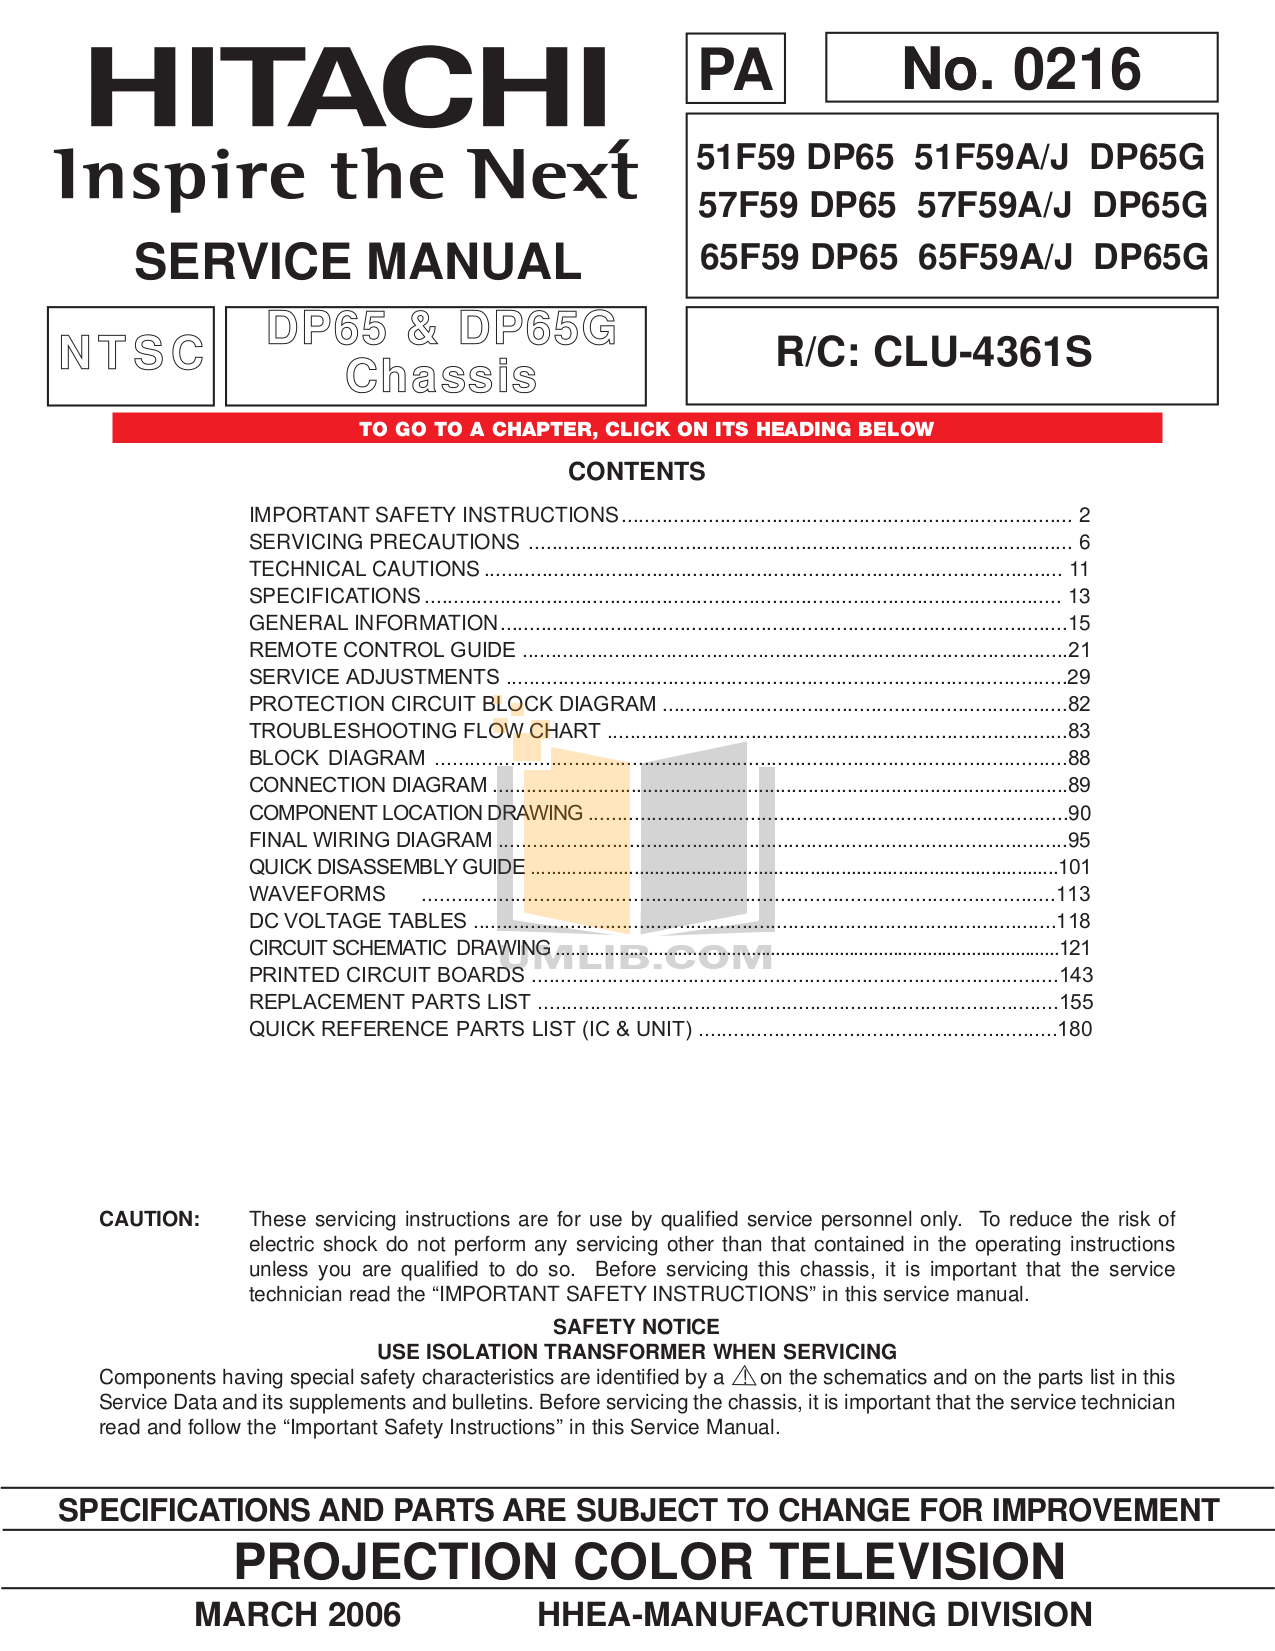 Admirable Pdf Manual For Hitachi Tv 51F59A Wiring Cloud Hisonuggs Outletorg